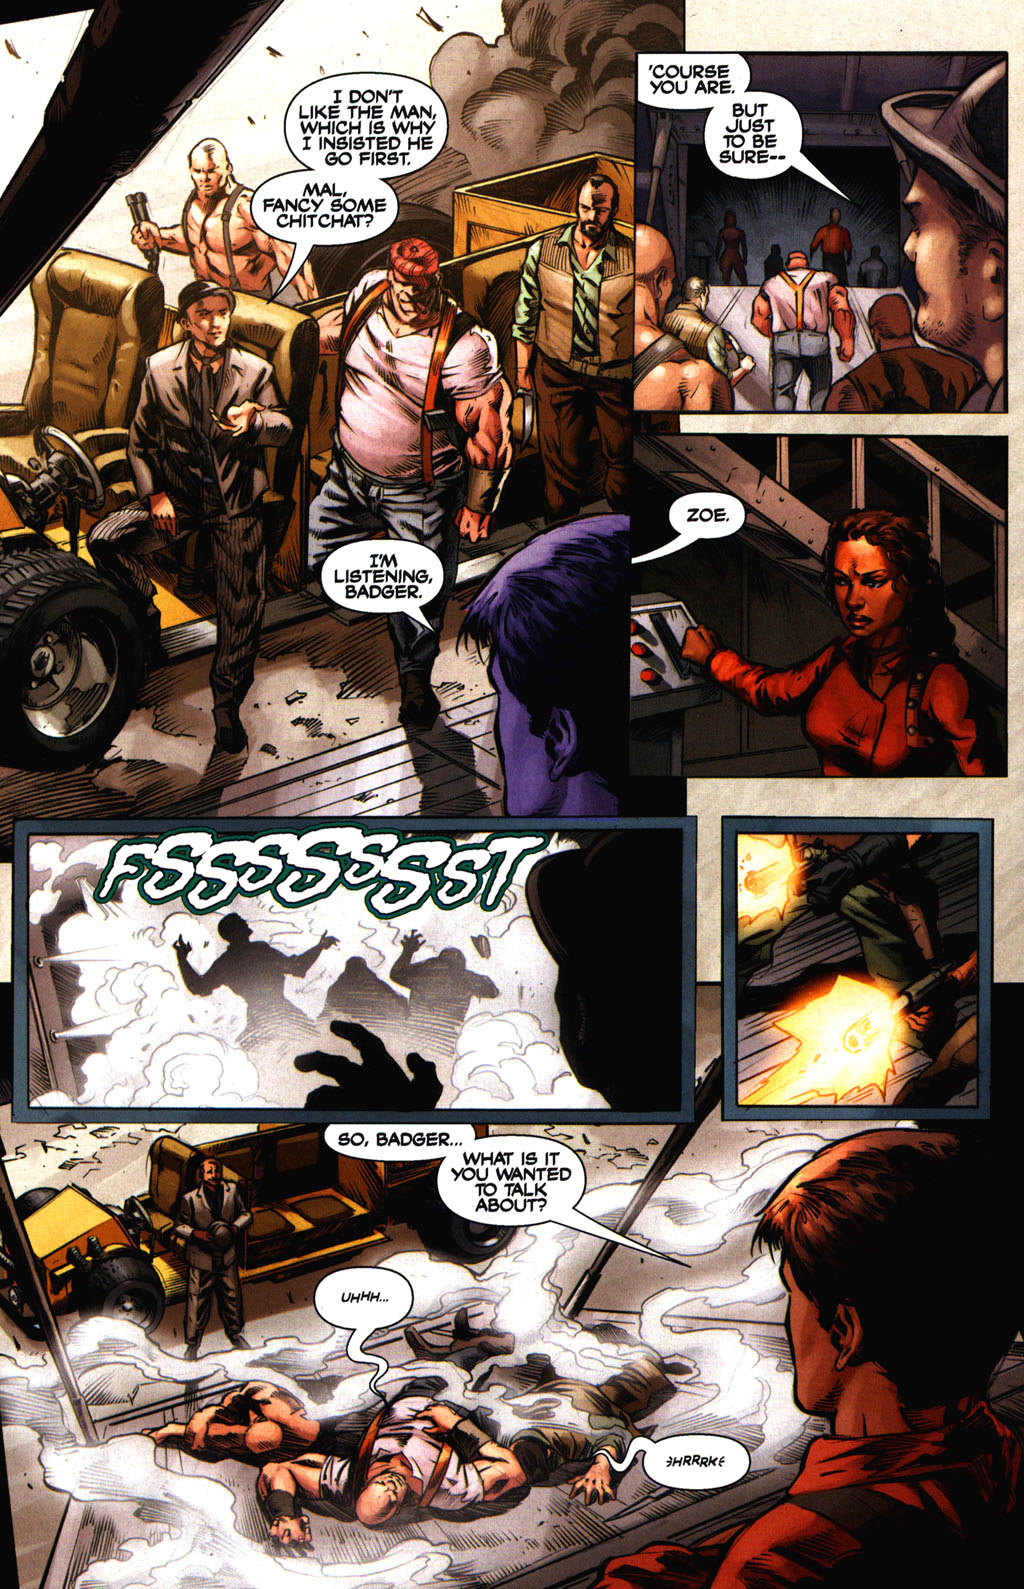 Read online Serenity comic -  Issue #2 - 10